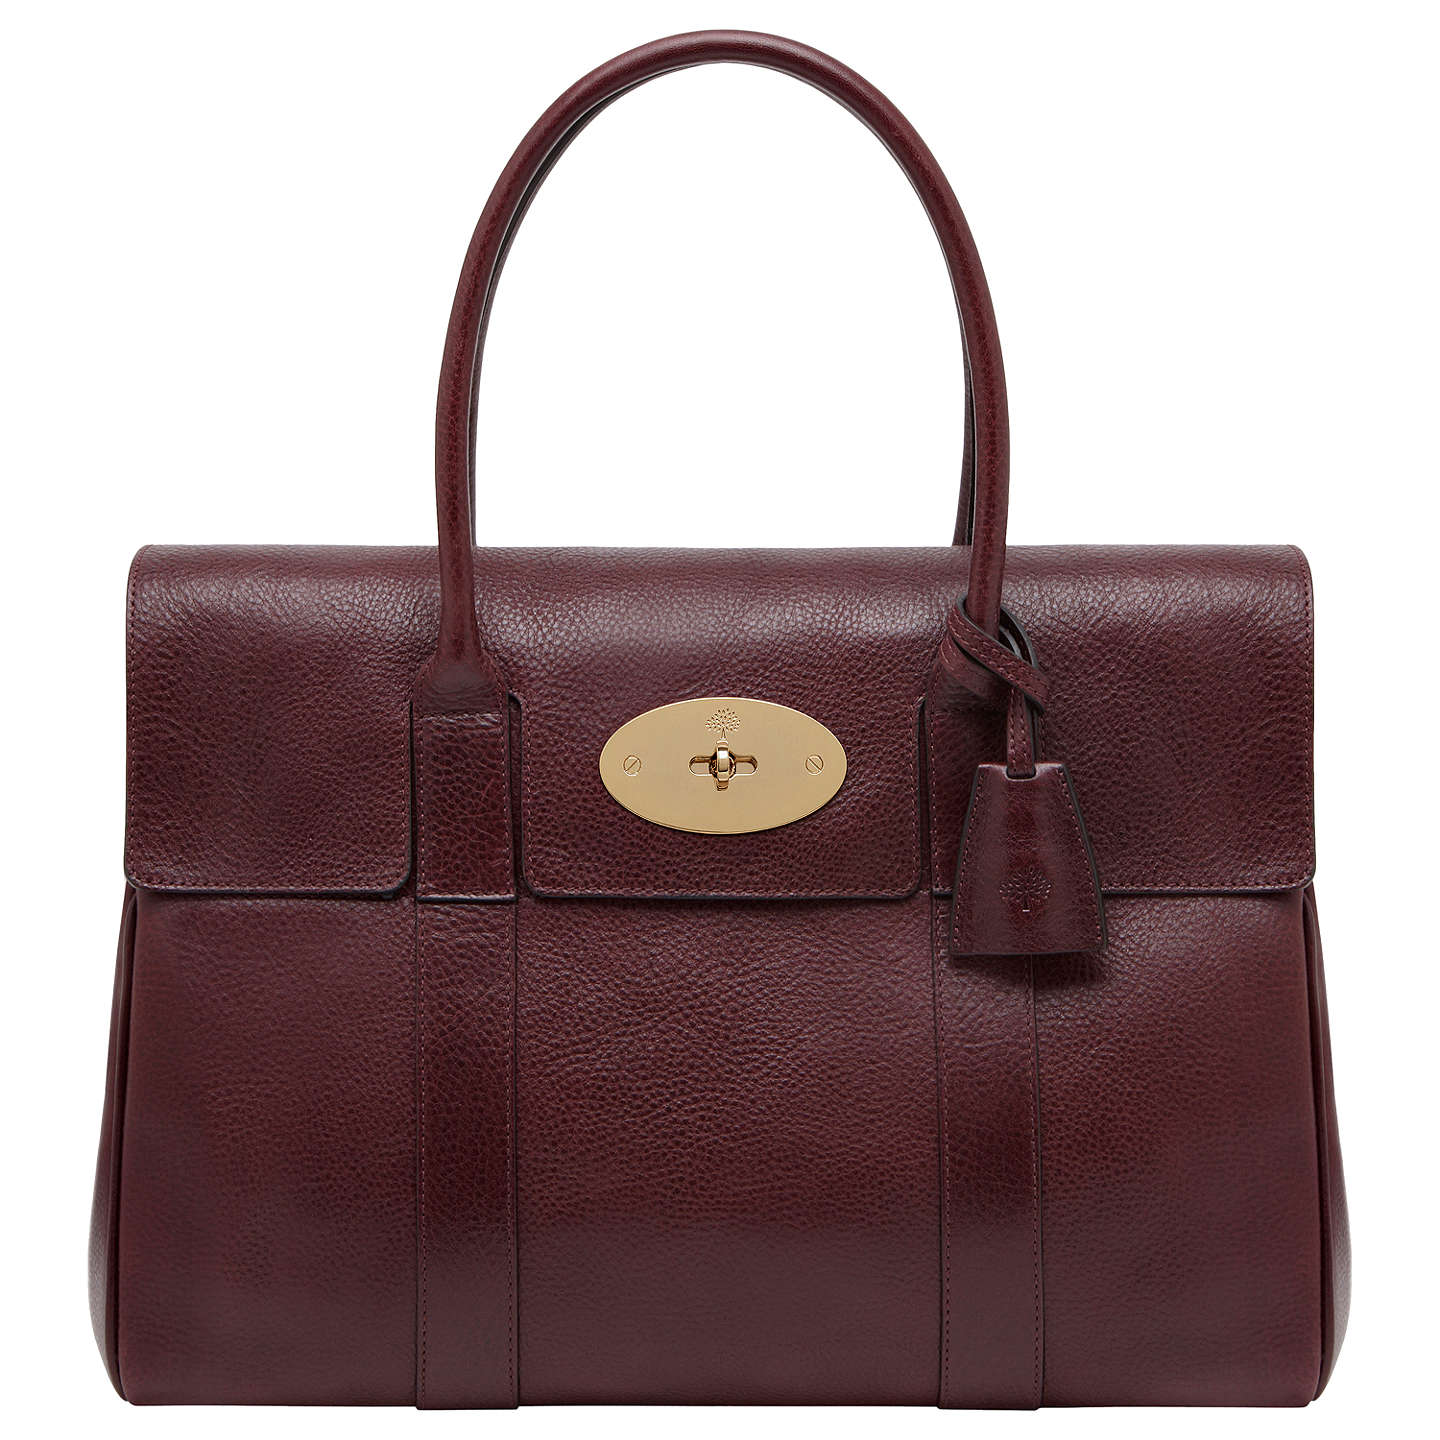 09ef1819647 ... john lewis a33f2 a0f55; cheapest how to authenticate mulberry authentic  mulberry bayswater buymulberry bayswater coloured veg tanned leather grab  bag